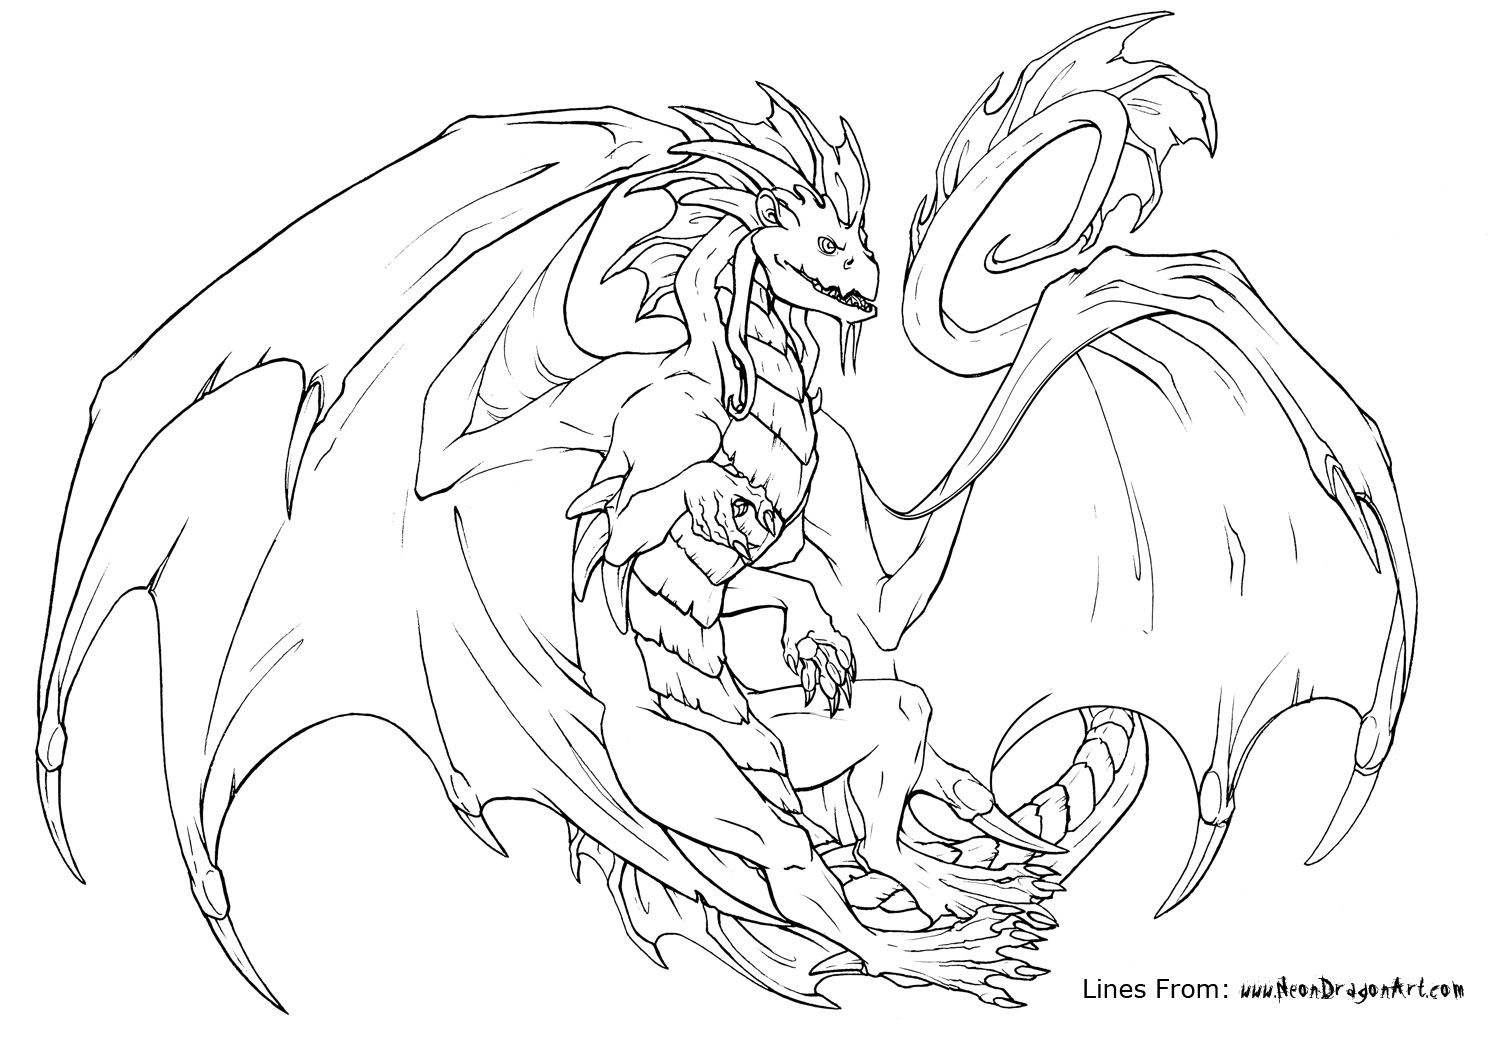 Dragon Breathing Fire Coloring Pages Cool Dragon Coloring Pages Free Printable Dragon Dragon Coloring Page Coloring Pages Printable Christmas Coloring Pages